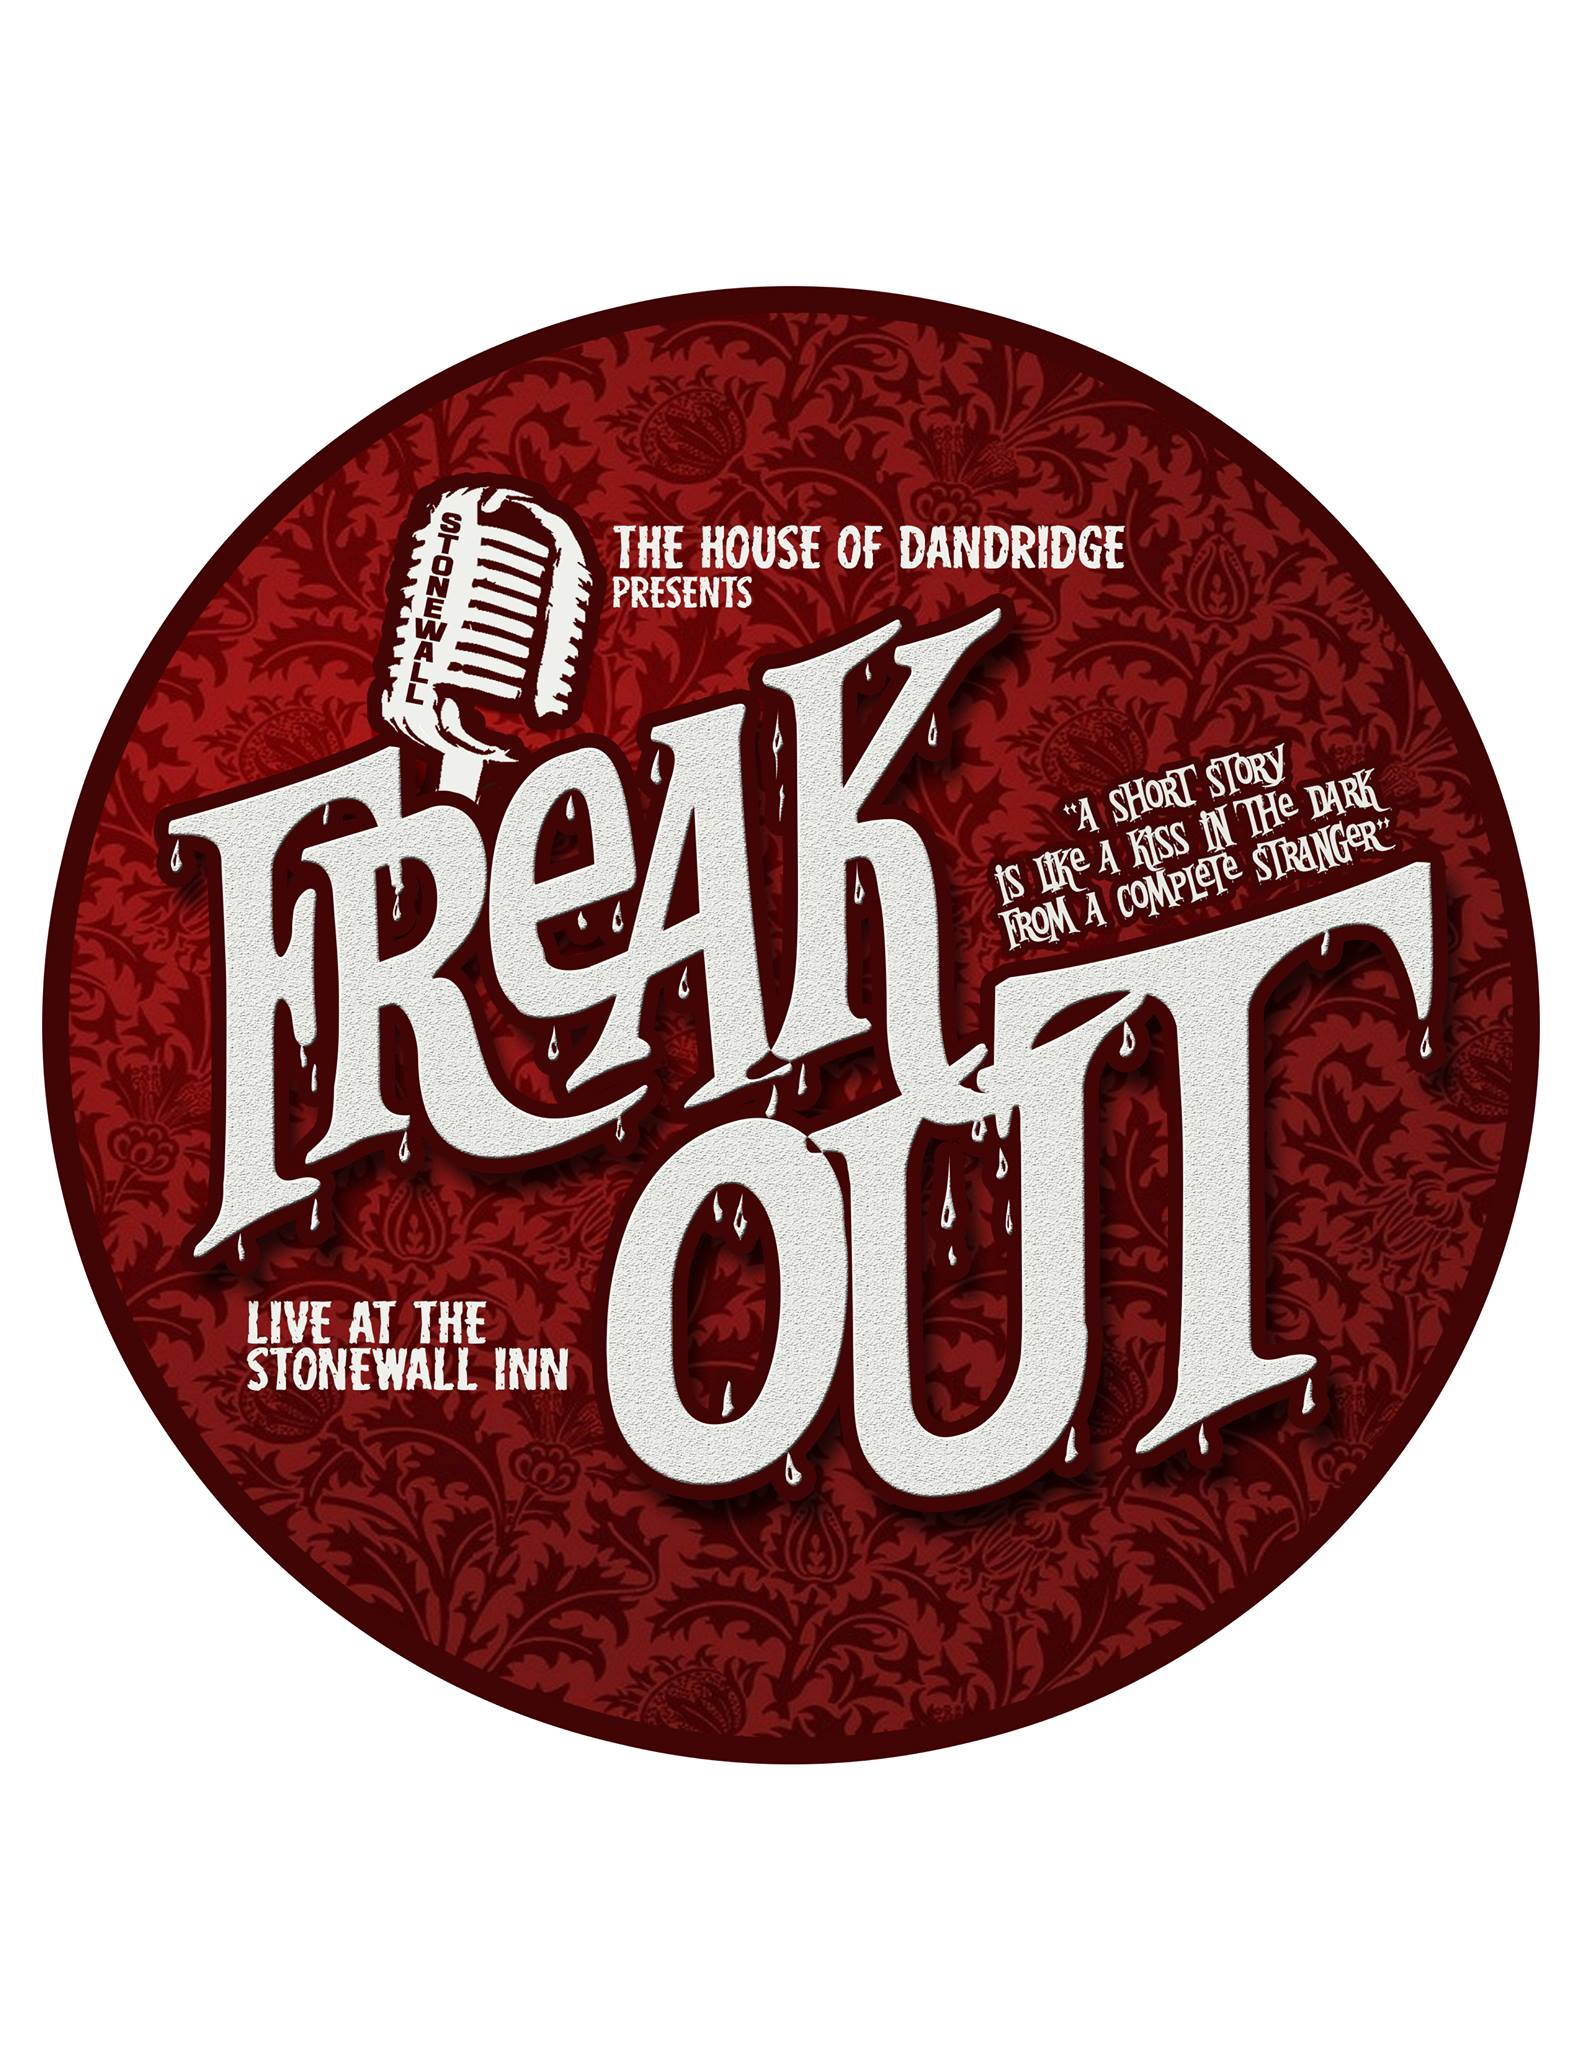 The House Of Dandridge Presents The Debut of FREAK OUT!   Wednesday, July 19th at The Stonewall Inn!